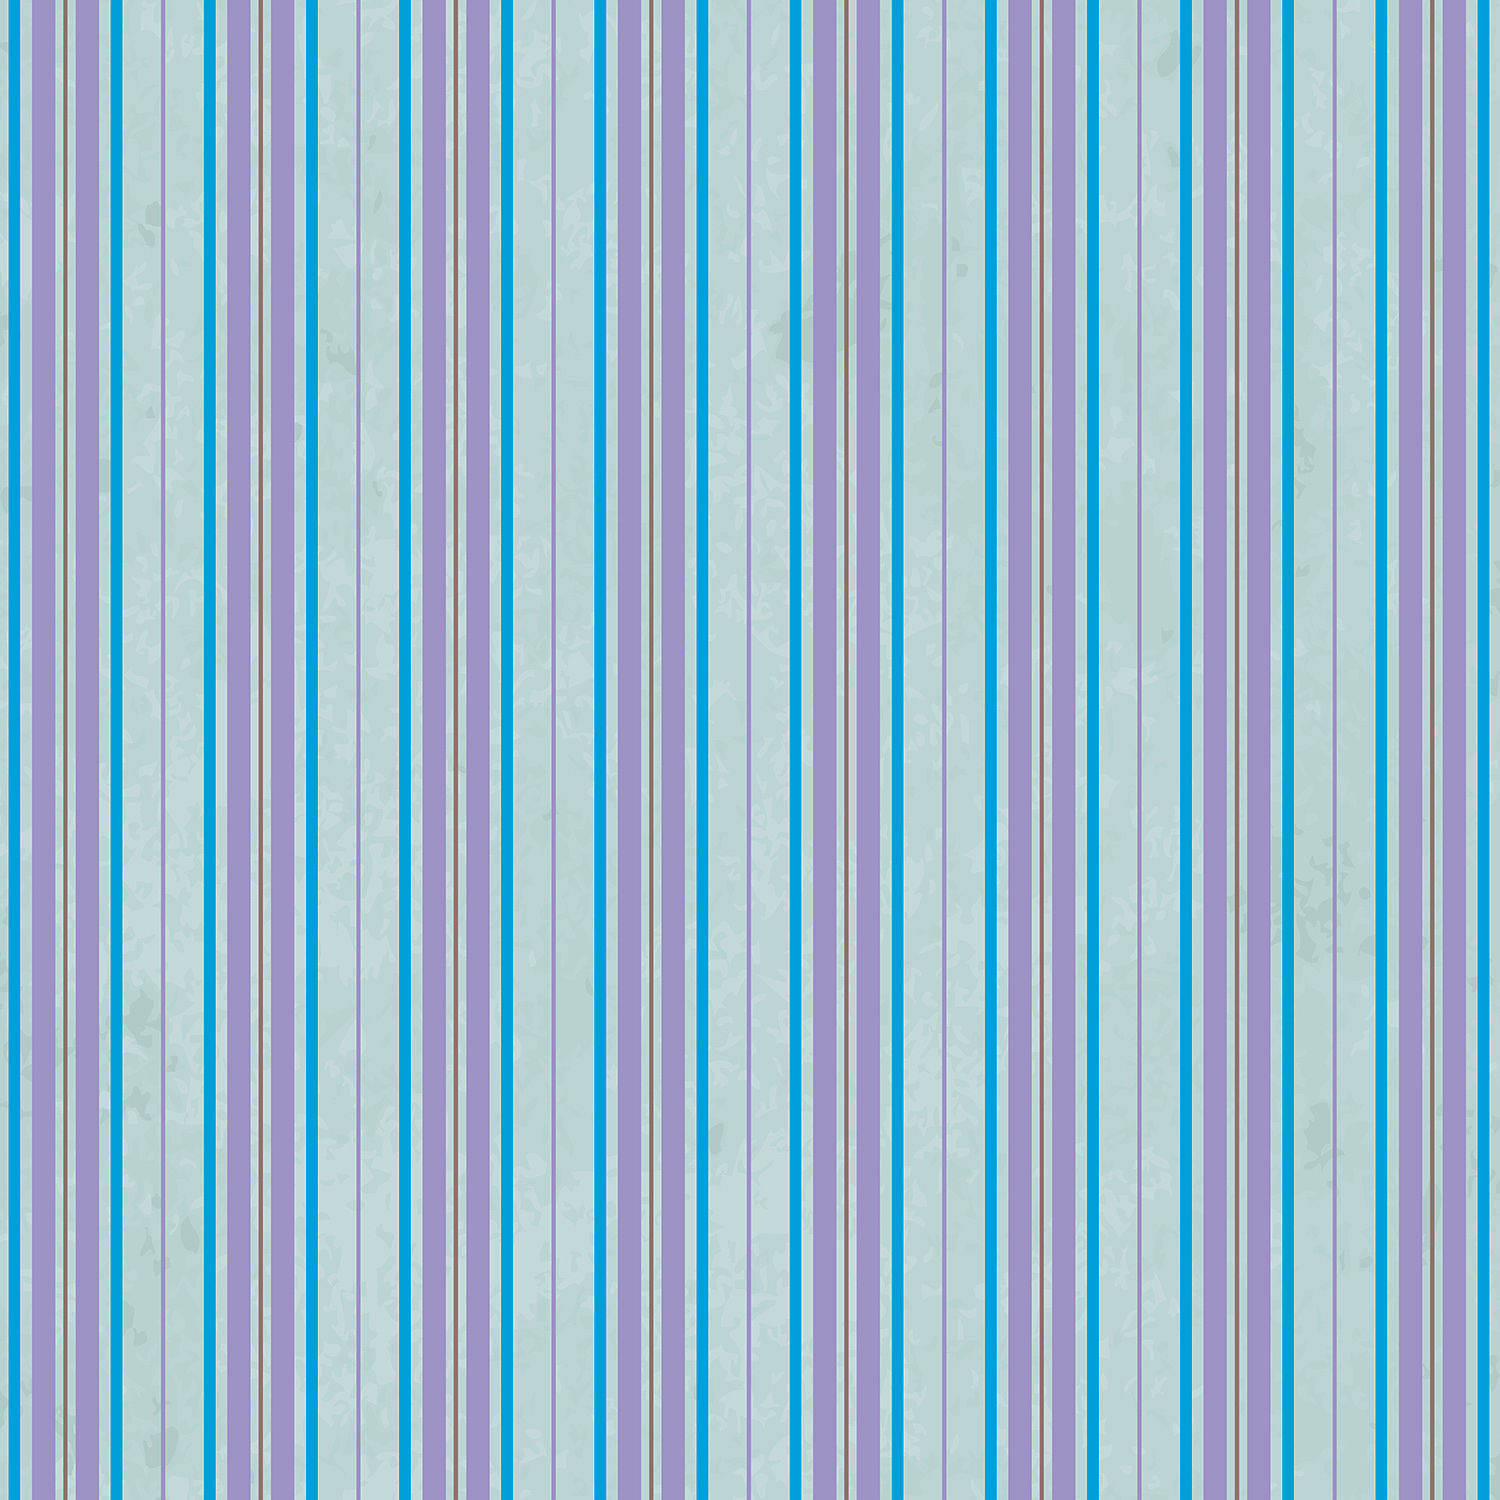 Westcott Striped Wallpaper Matte Vinyl D0049 43x43 Vy Bl Bh